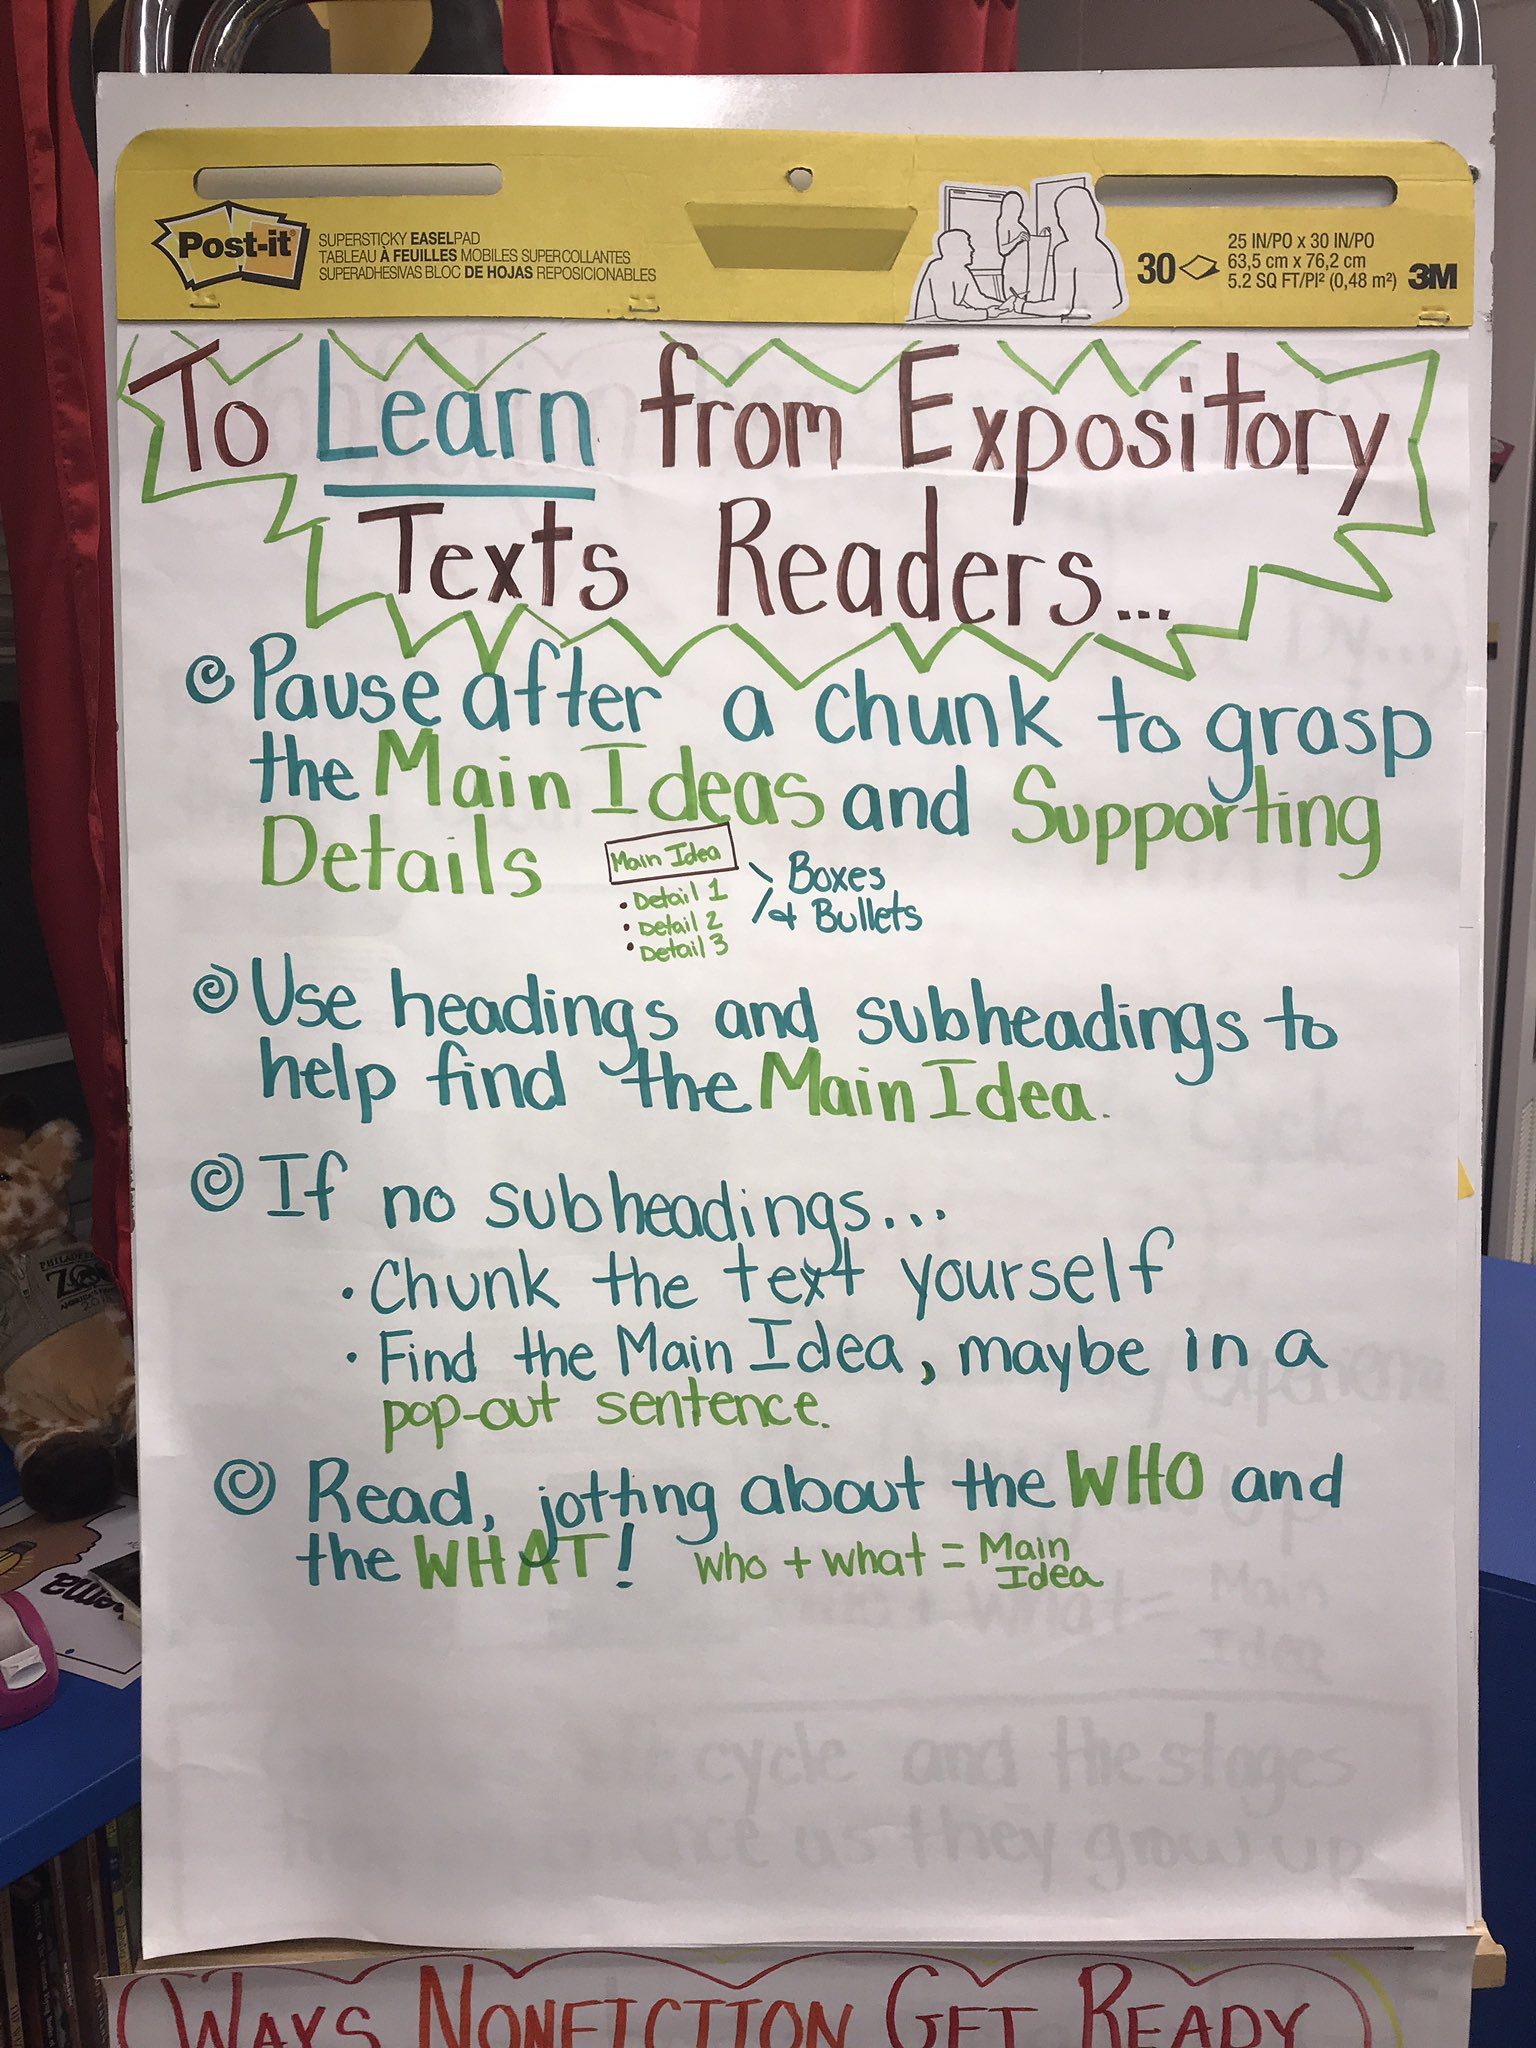 Damien Font On Twitter Mvsroom21 Superheroes Working To Analyze The Main Idea And Supporting Details In Expository Texts Boxesandbullets Tcrwp Https T Co V8lnvrmu2c